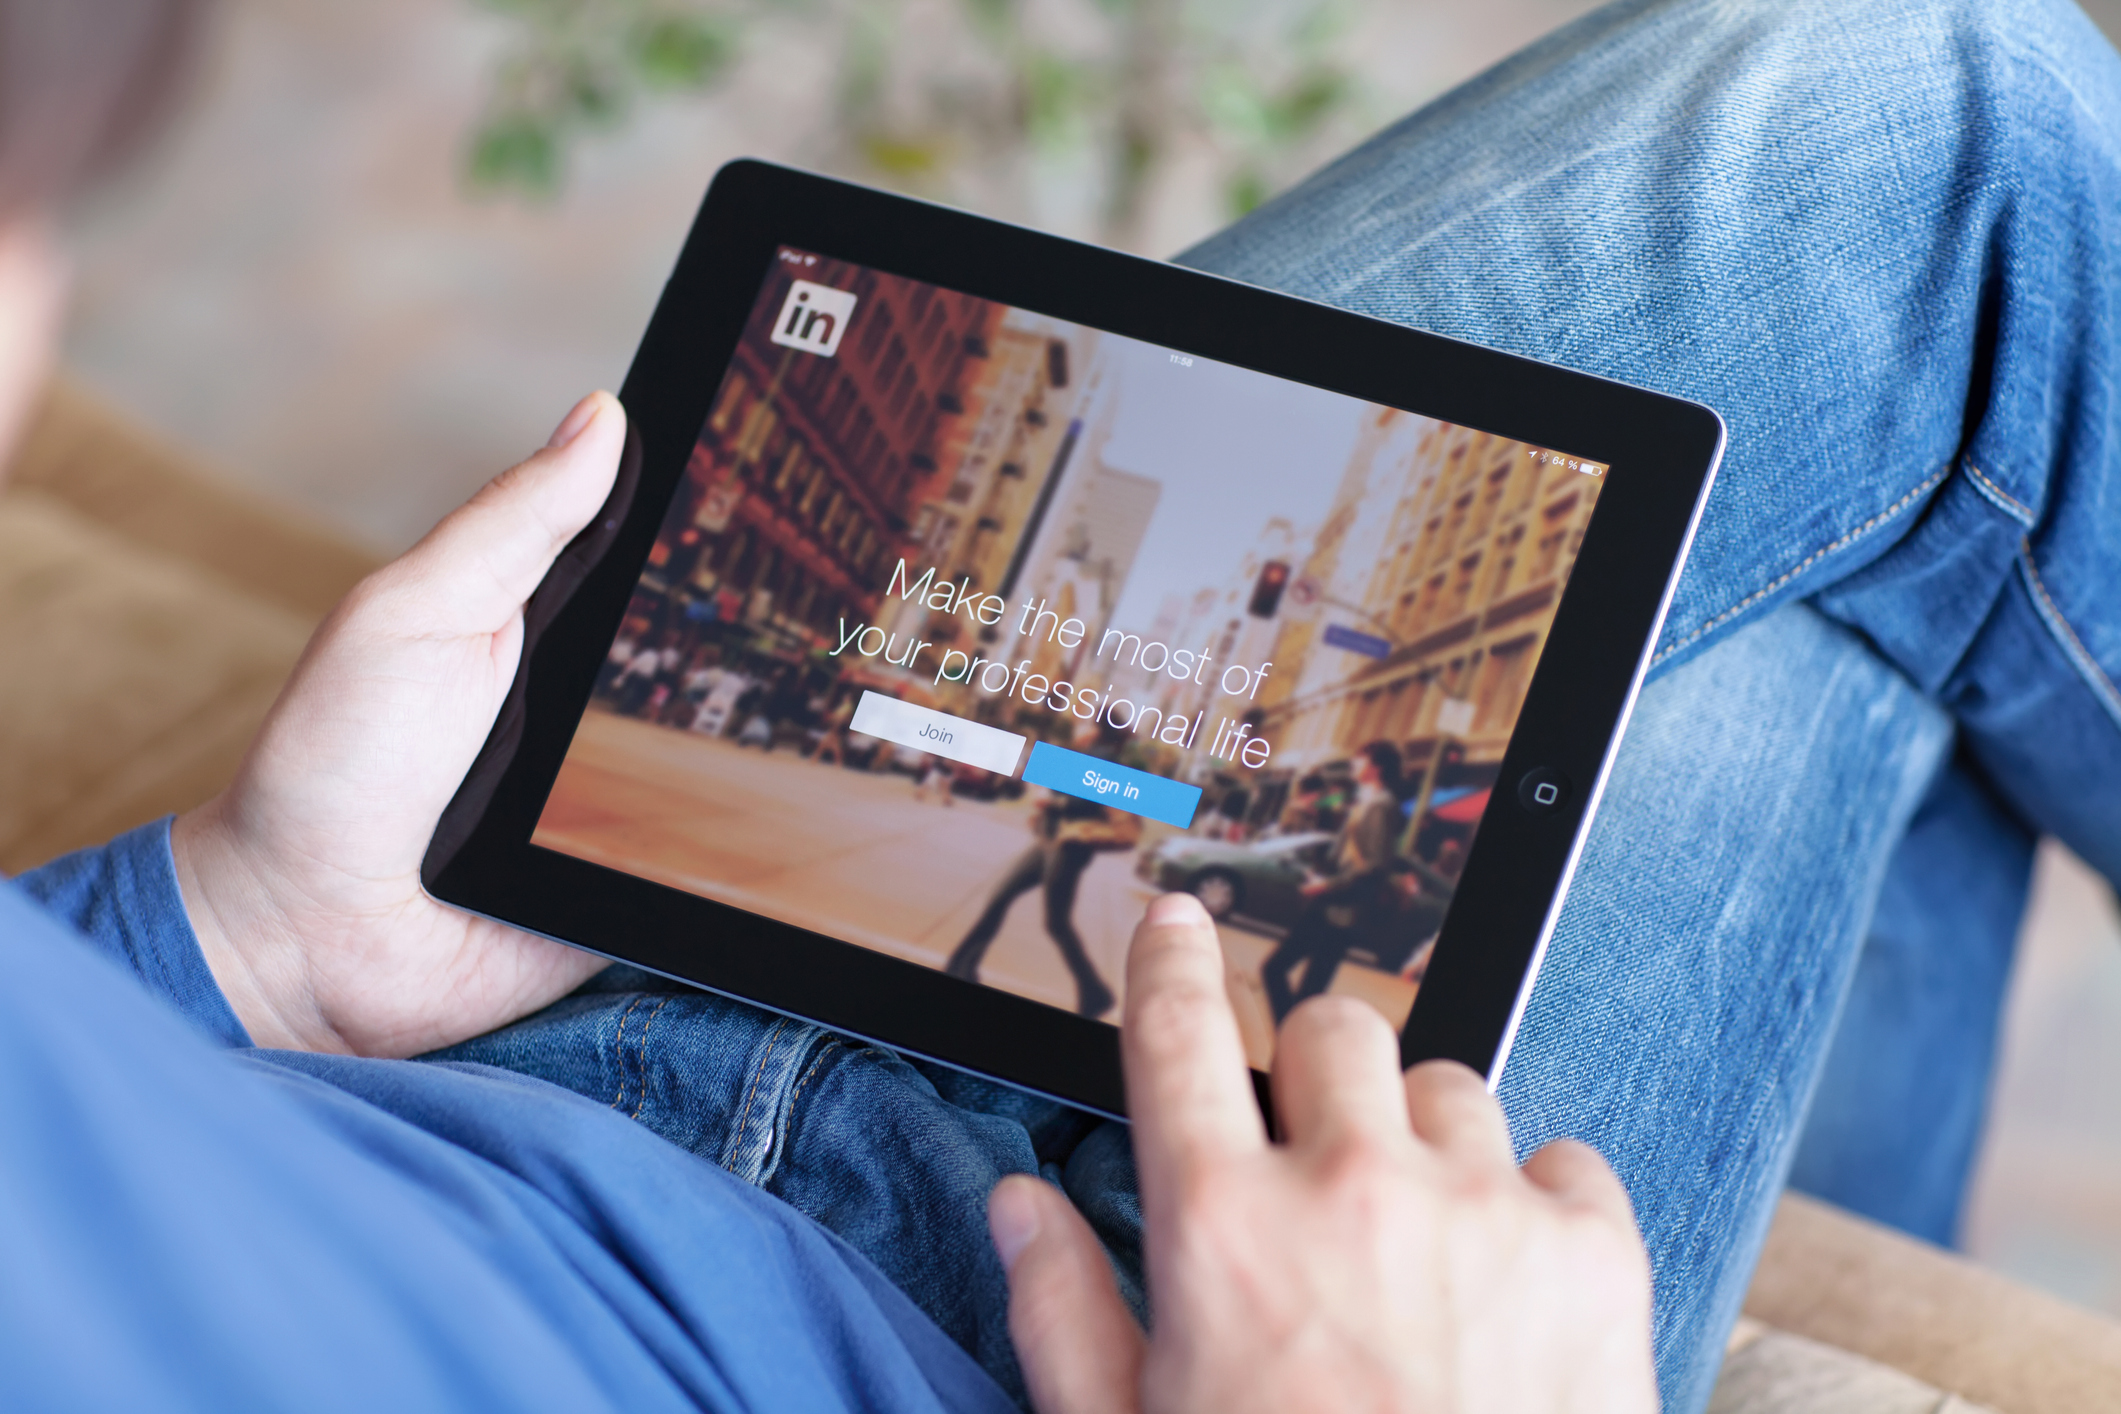 LinkedIn For Your Project Management Career